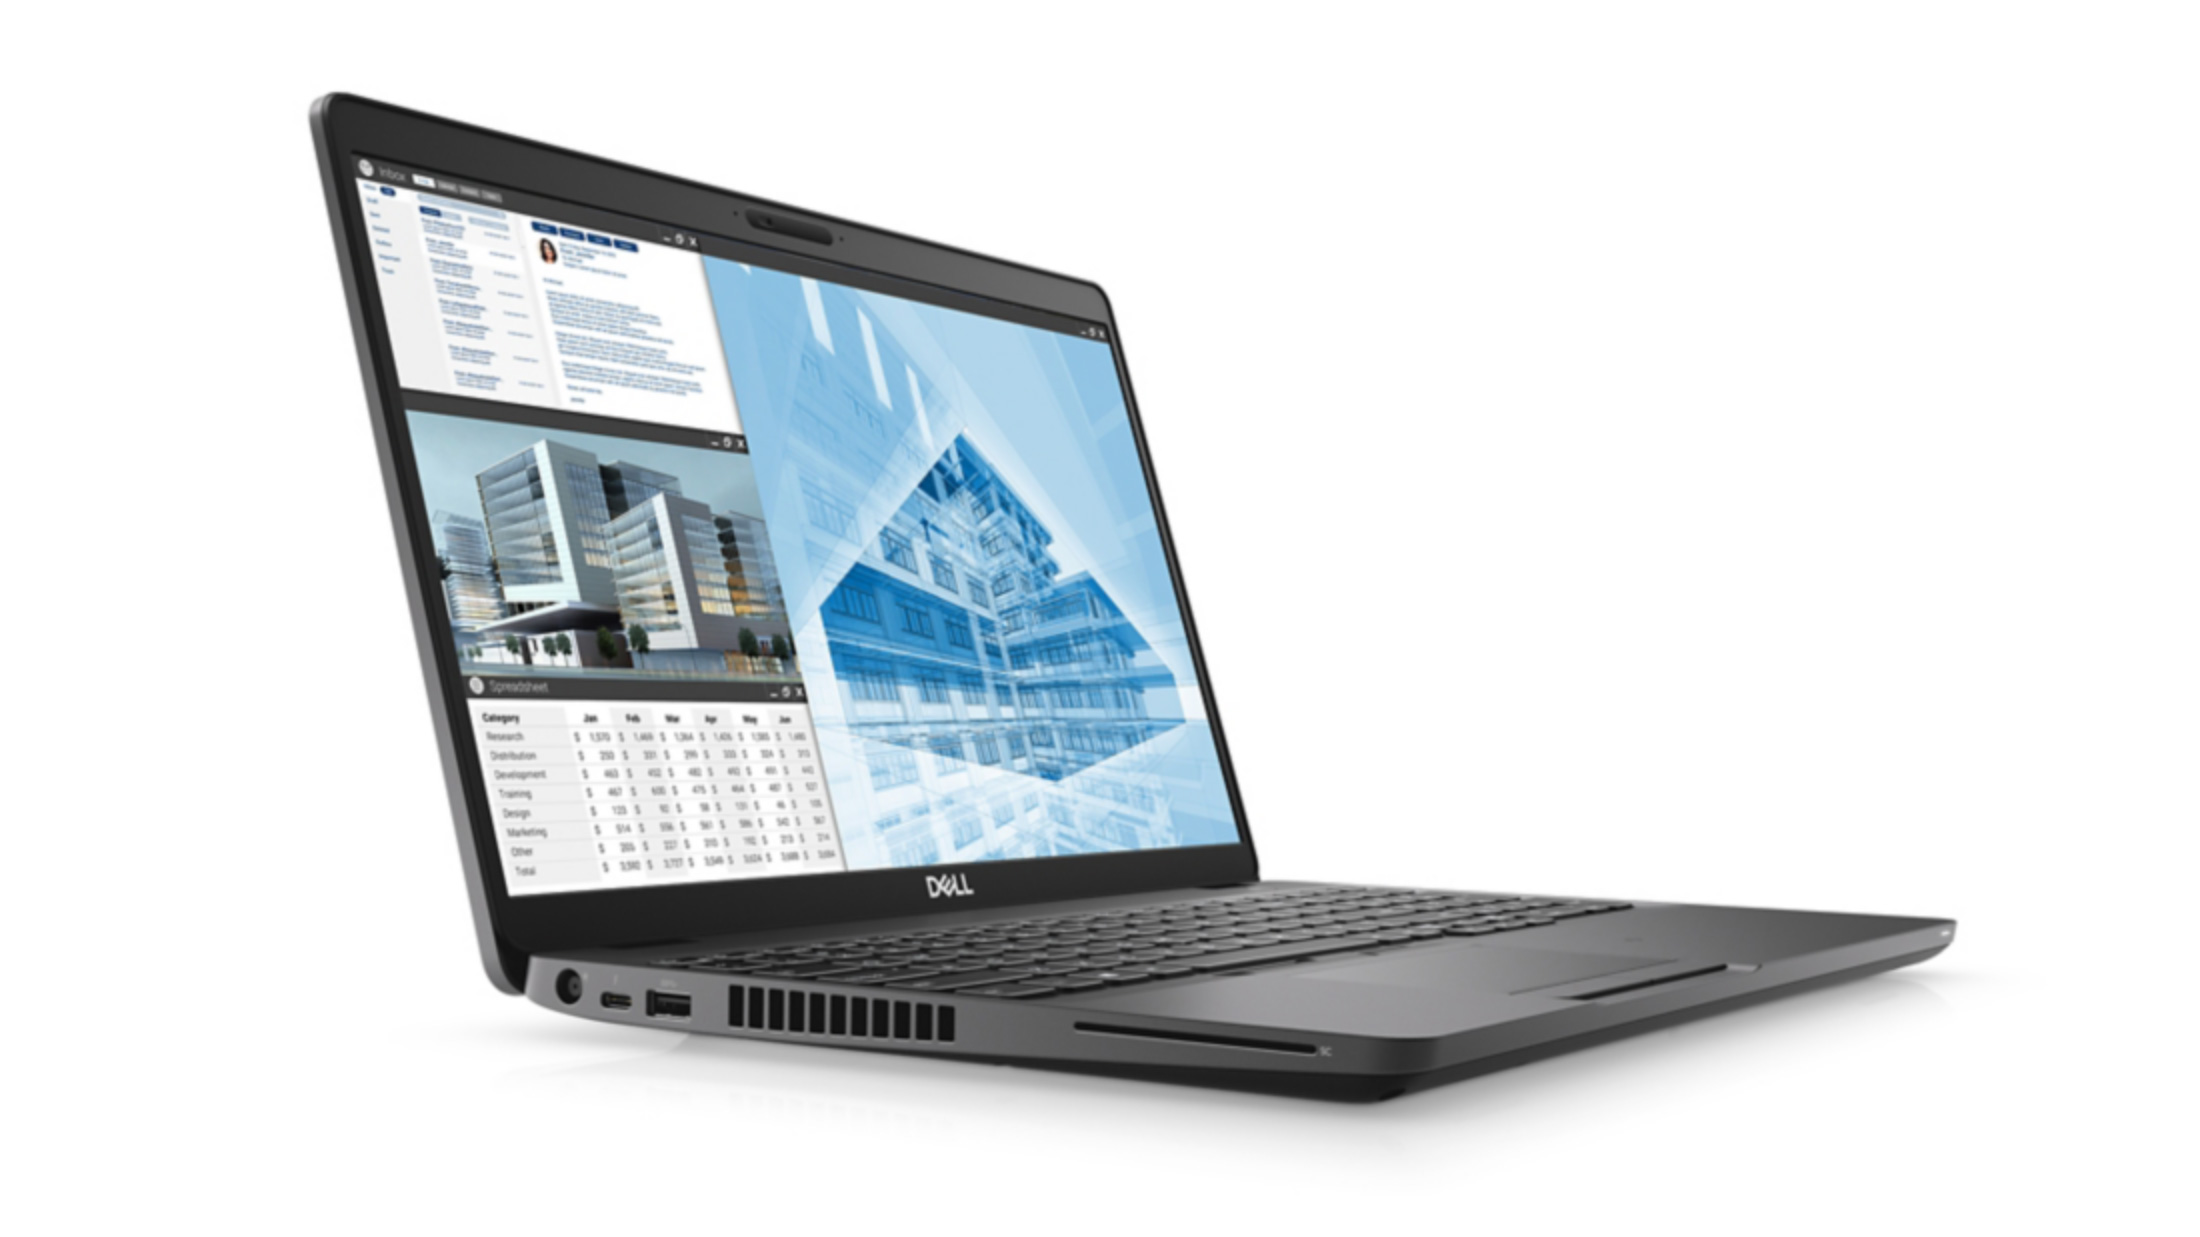 Best laptops for graphic design: Dell Precision 3540